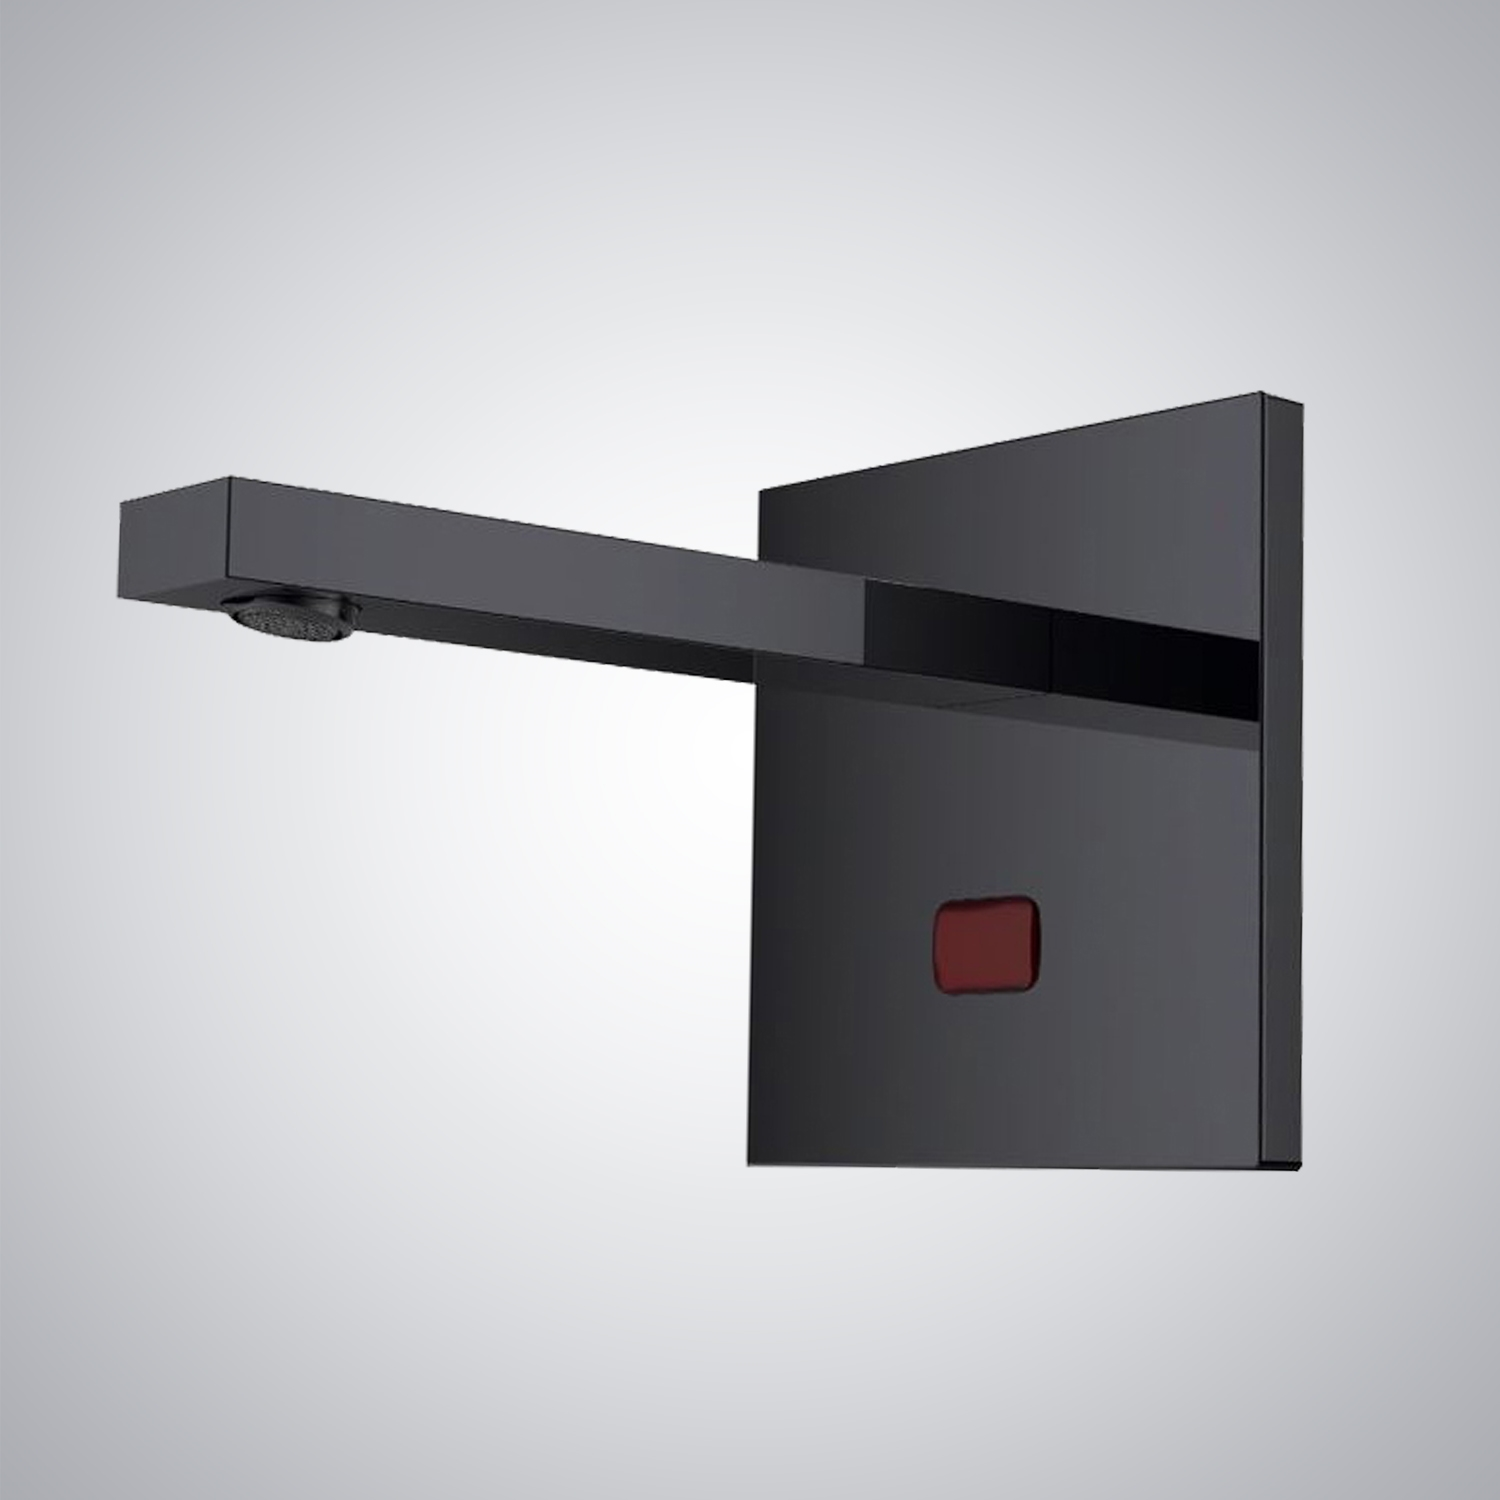 Fontana Commercial Oil Rubbed Bronze Automatic Wall Mount XT5 Sensor Faucet